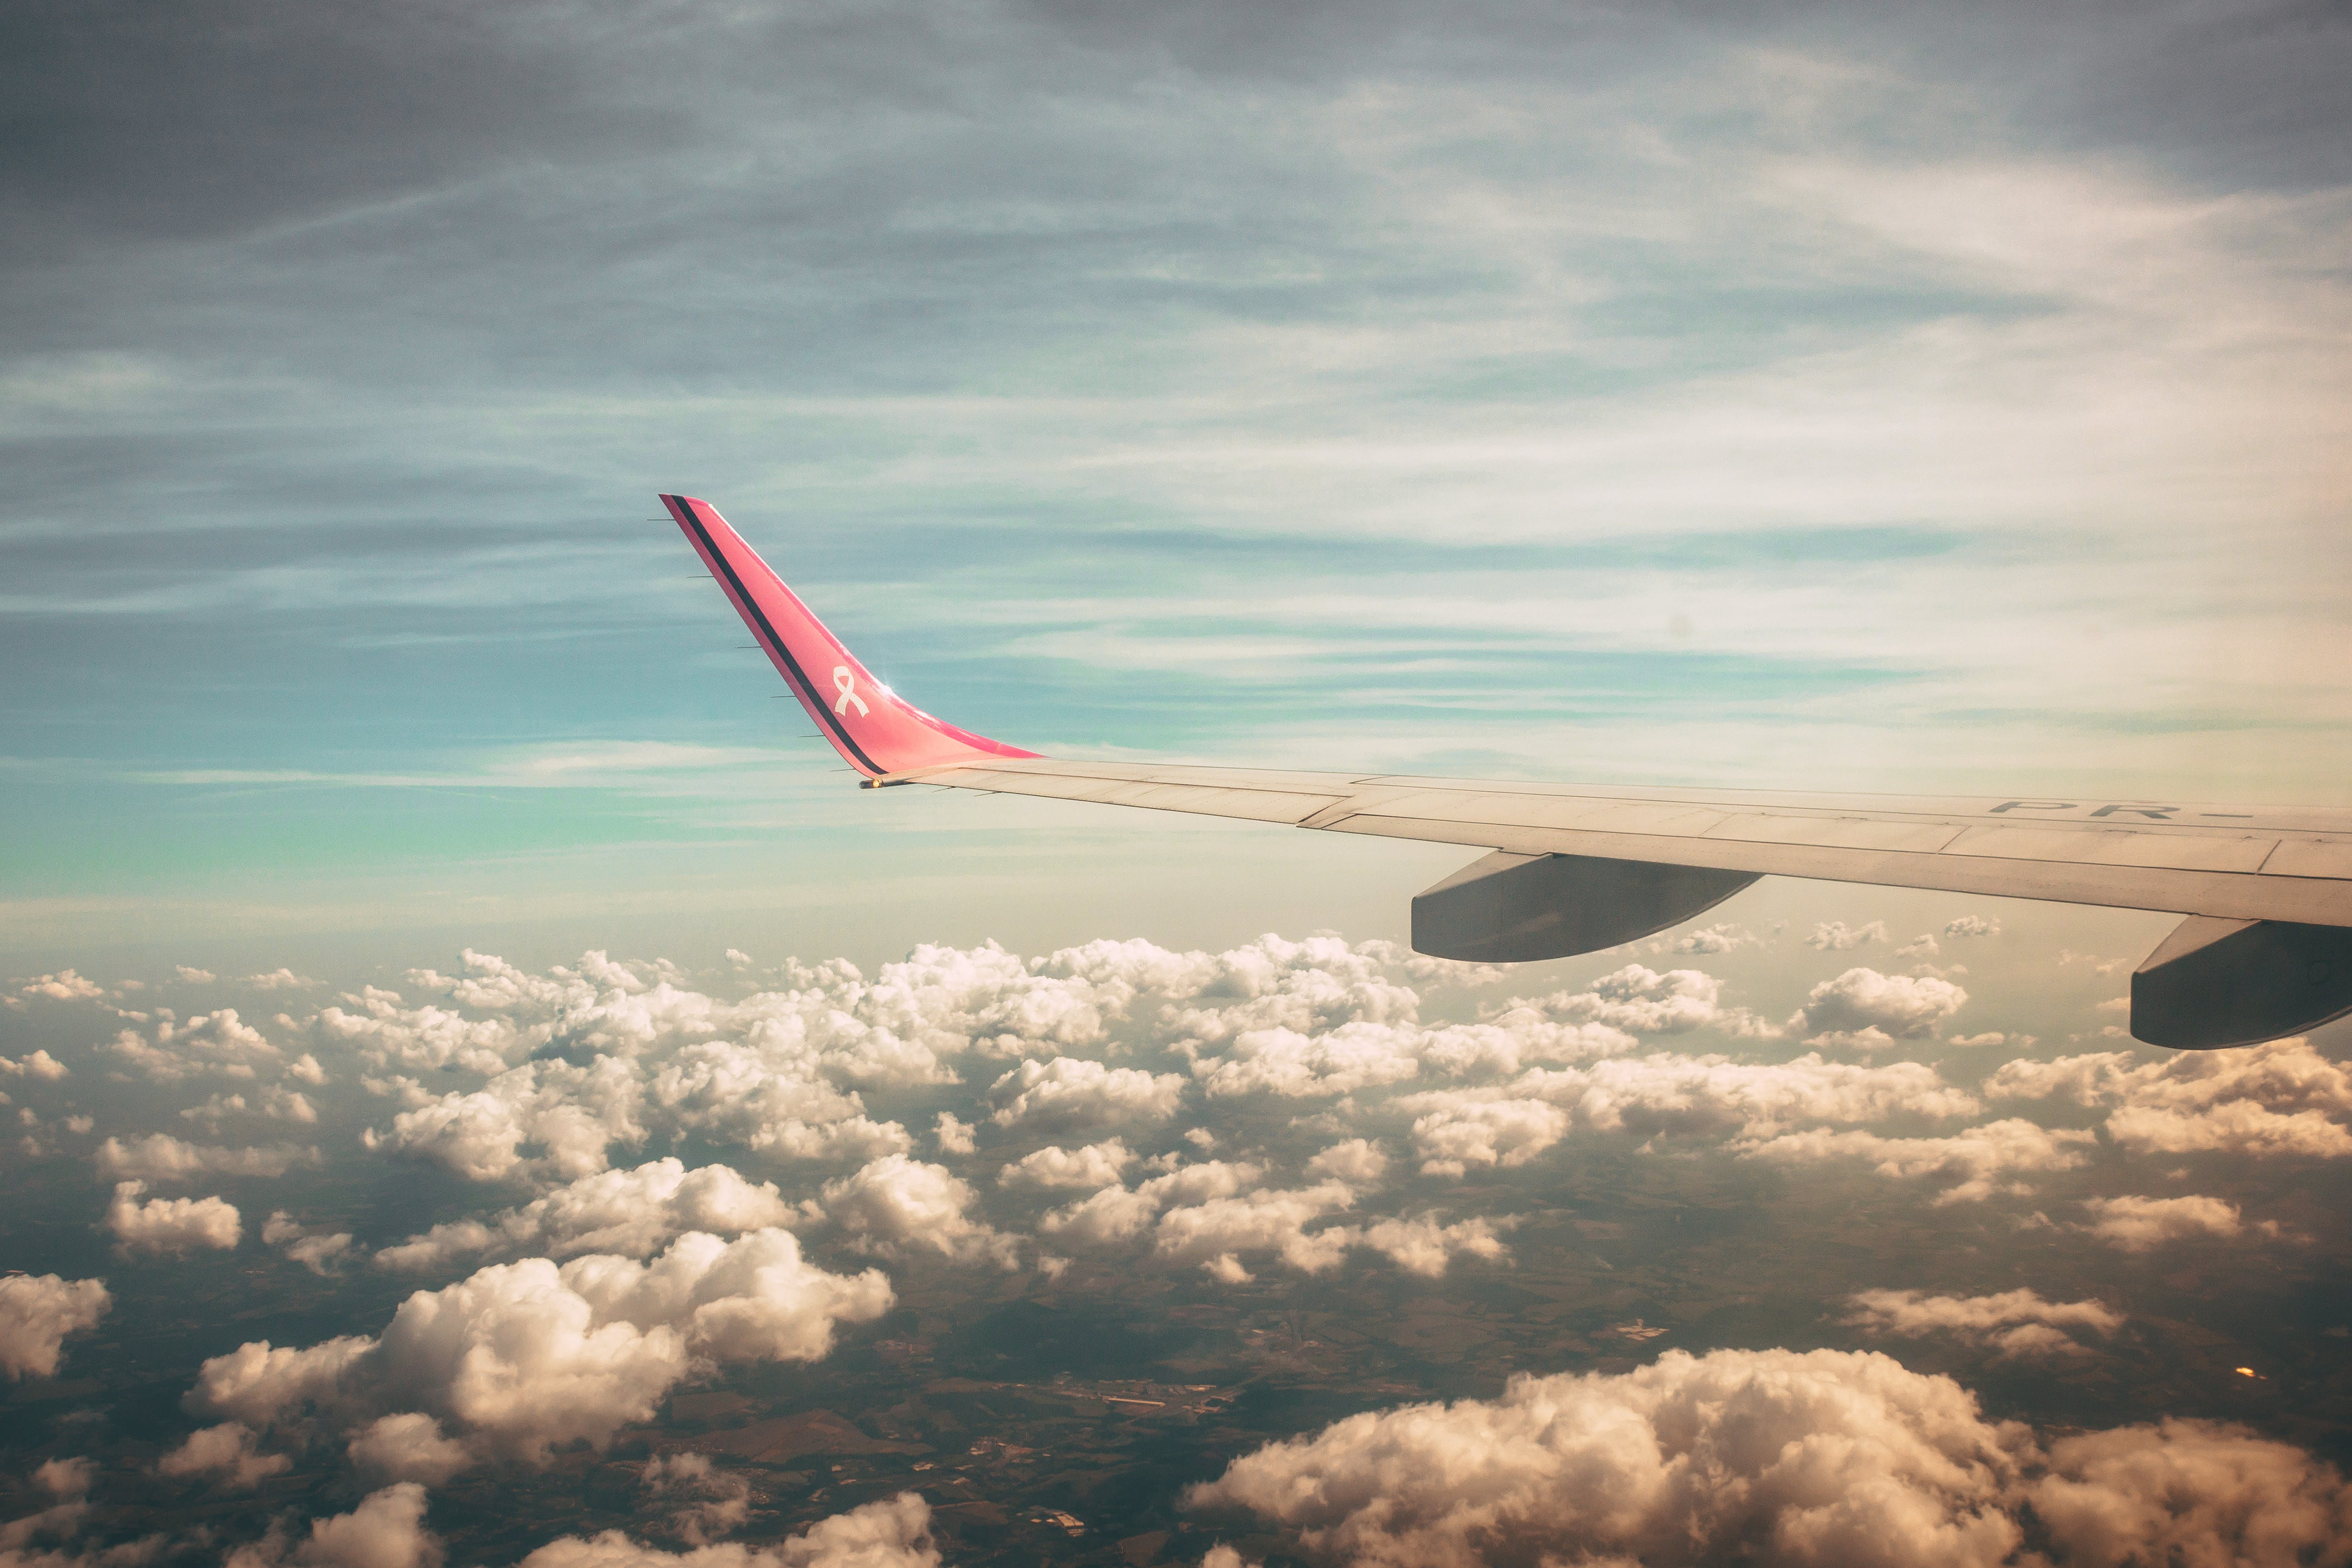 Aerial Photography of Airplane Wing over Clouds